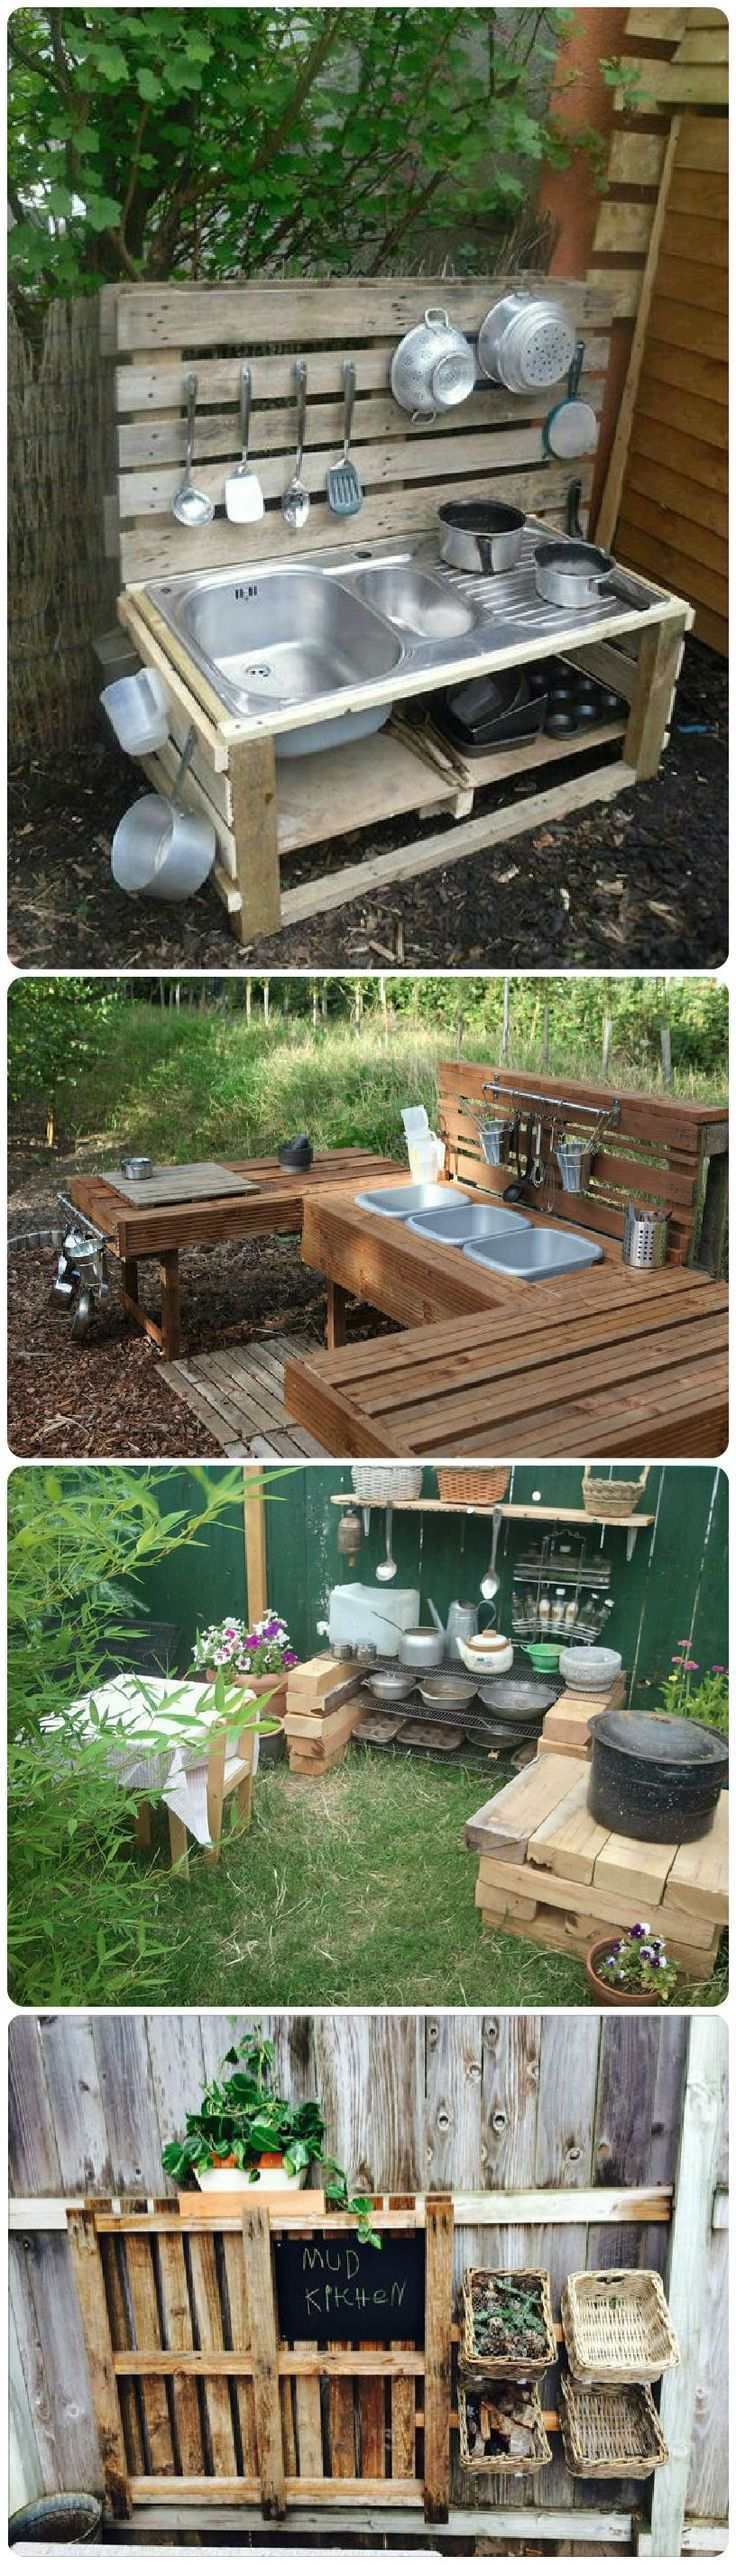 20 mud kitchen ideas Oh what I would have given to had one of these when I was a kid, actually, wouldn't mind a functioning one now! lol